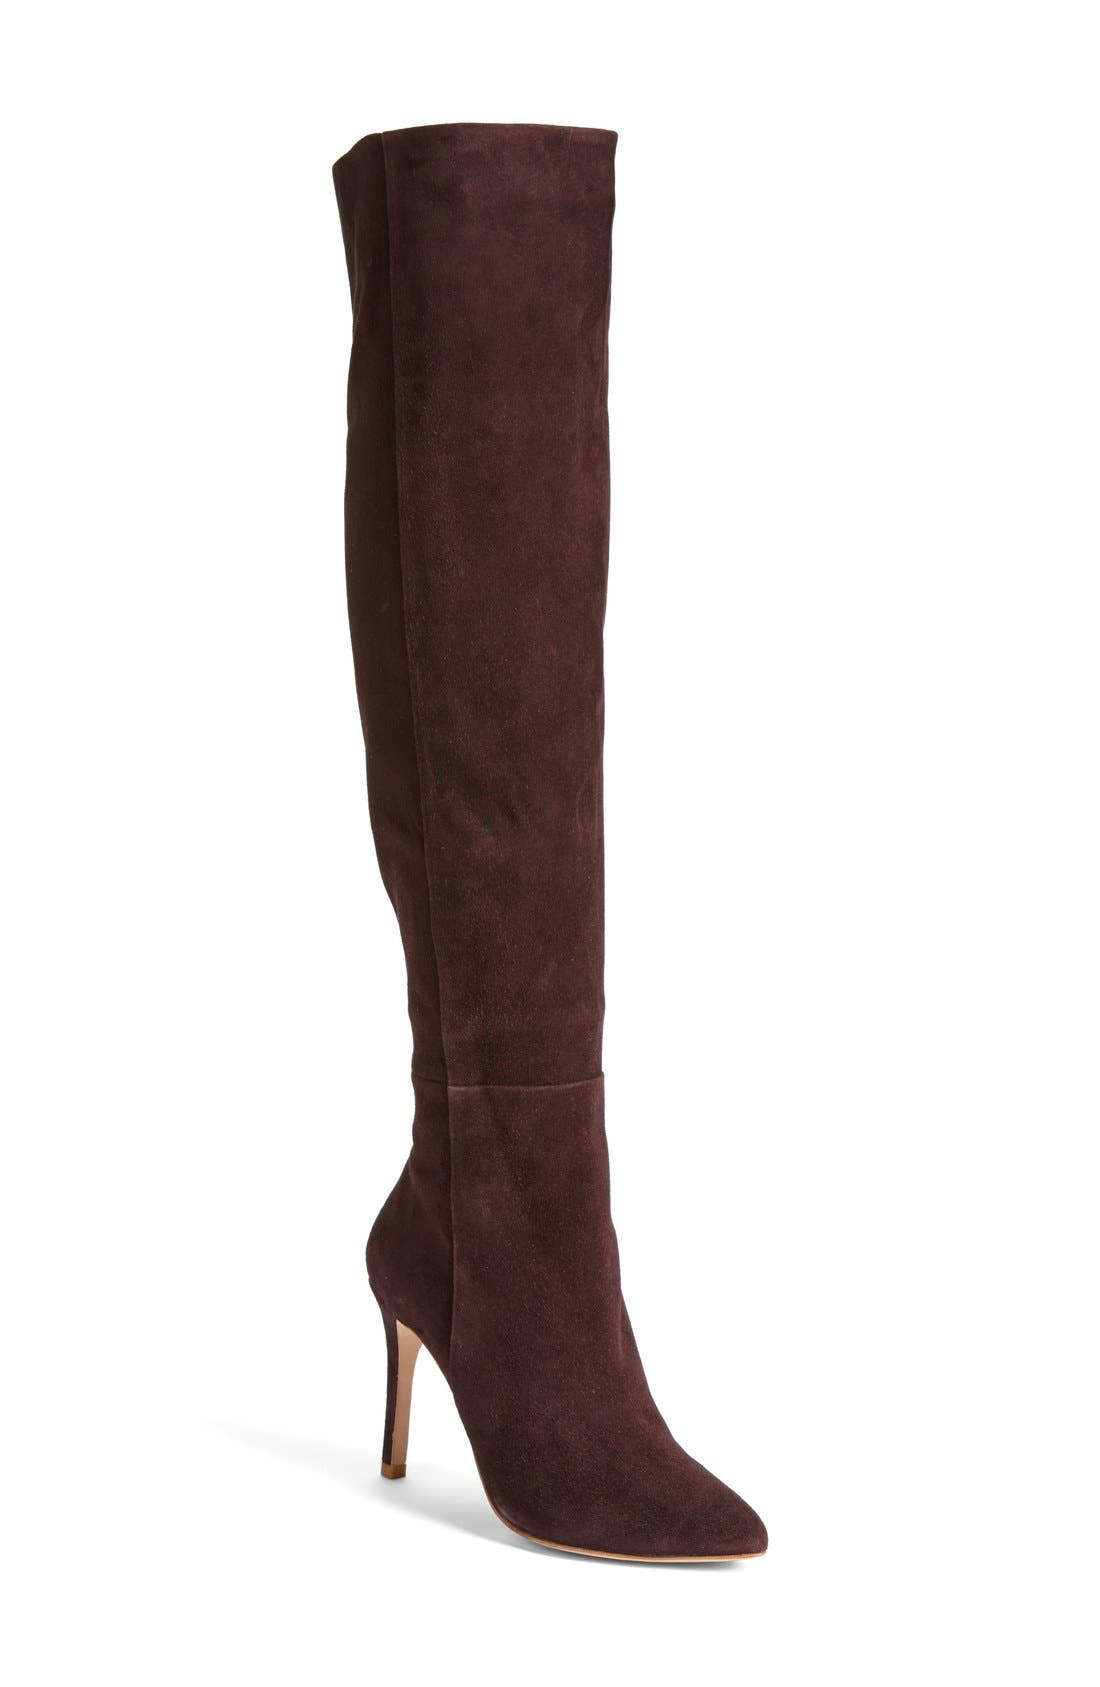 Main Image - Joie 'Olivia' Suede Over the Knee Boot (Women)